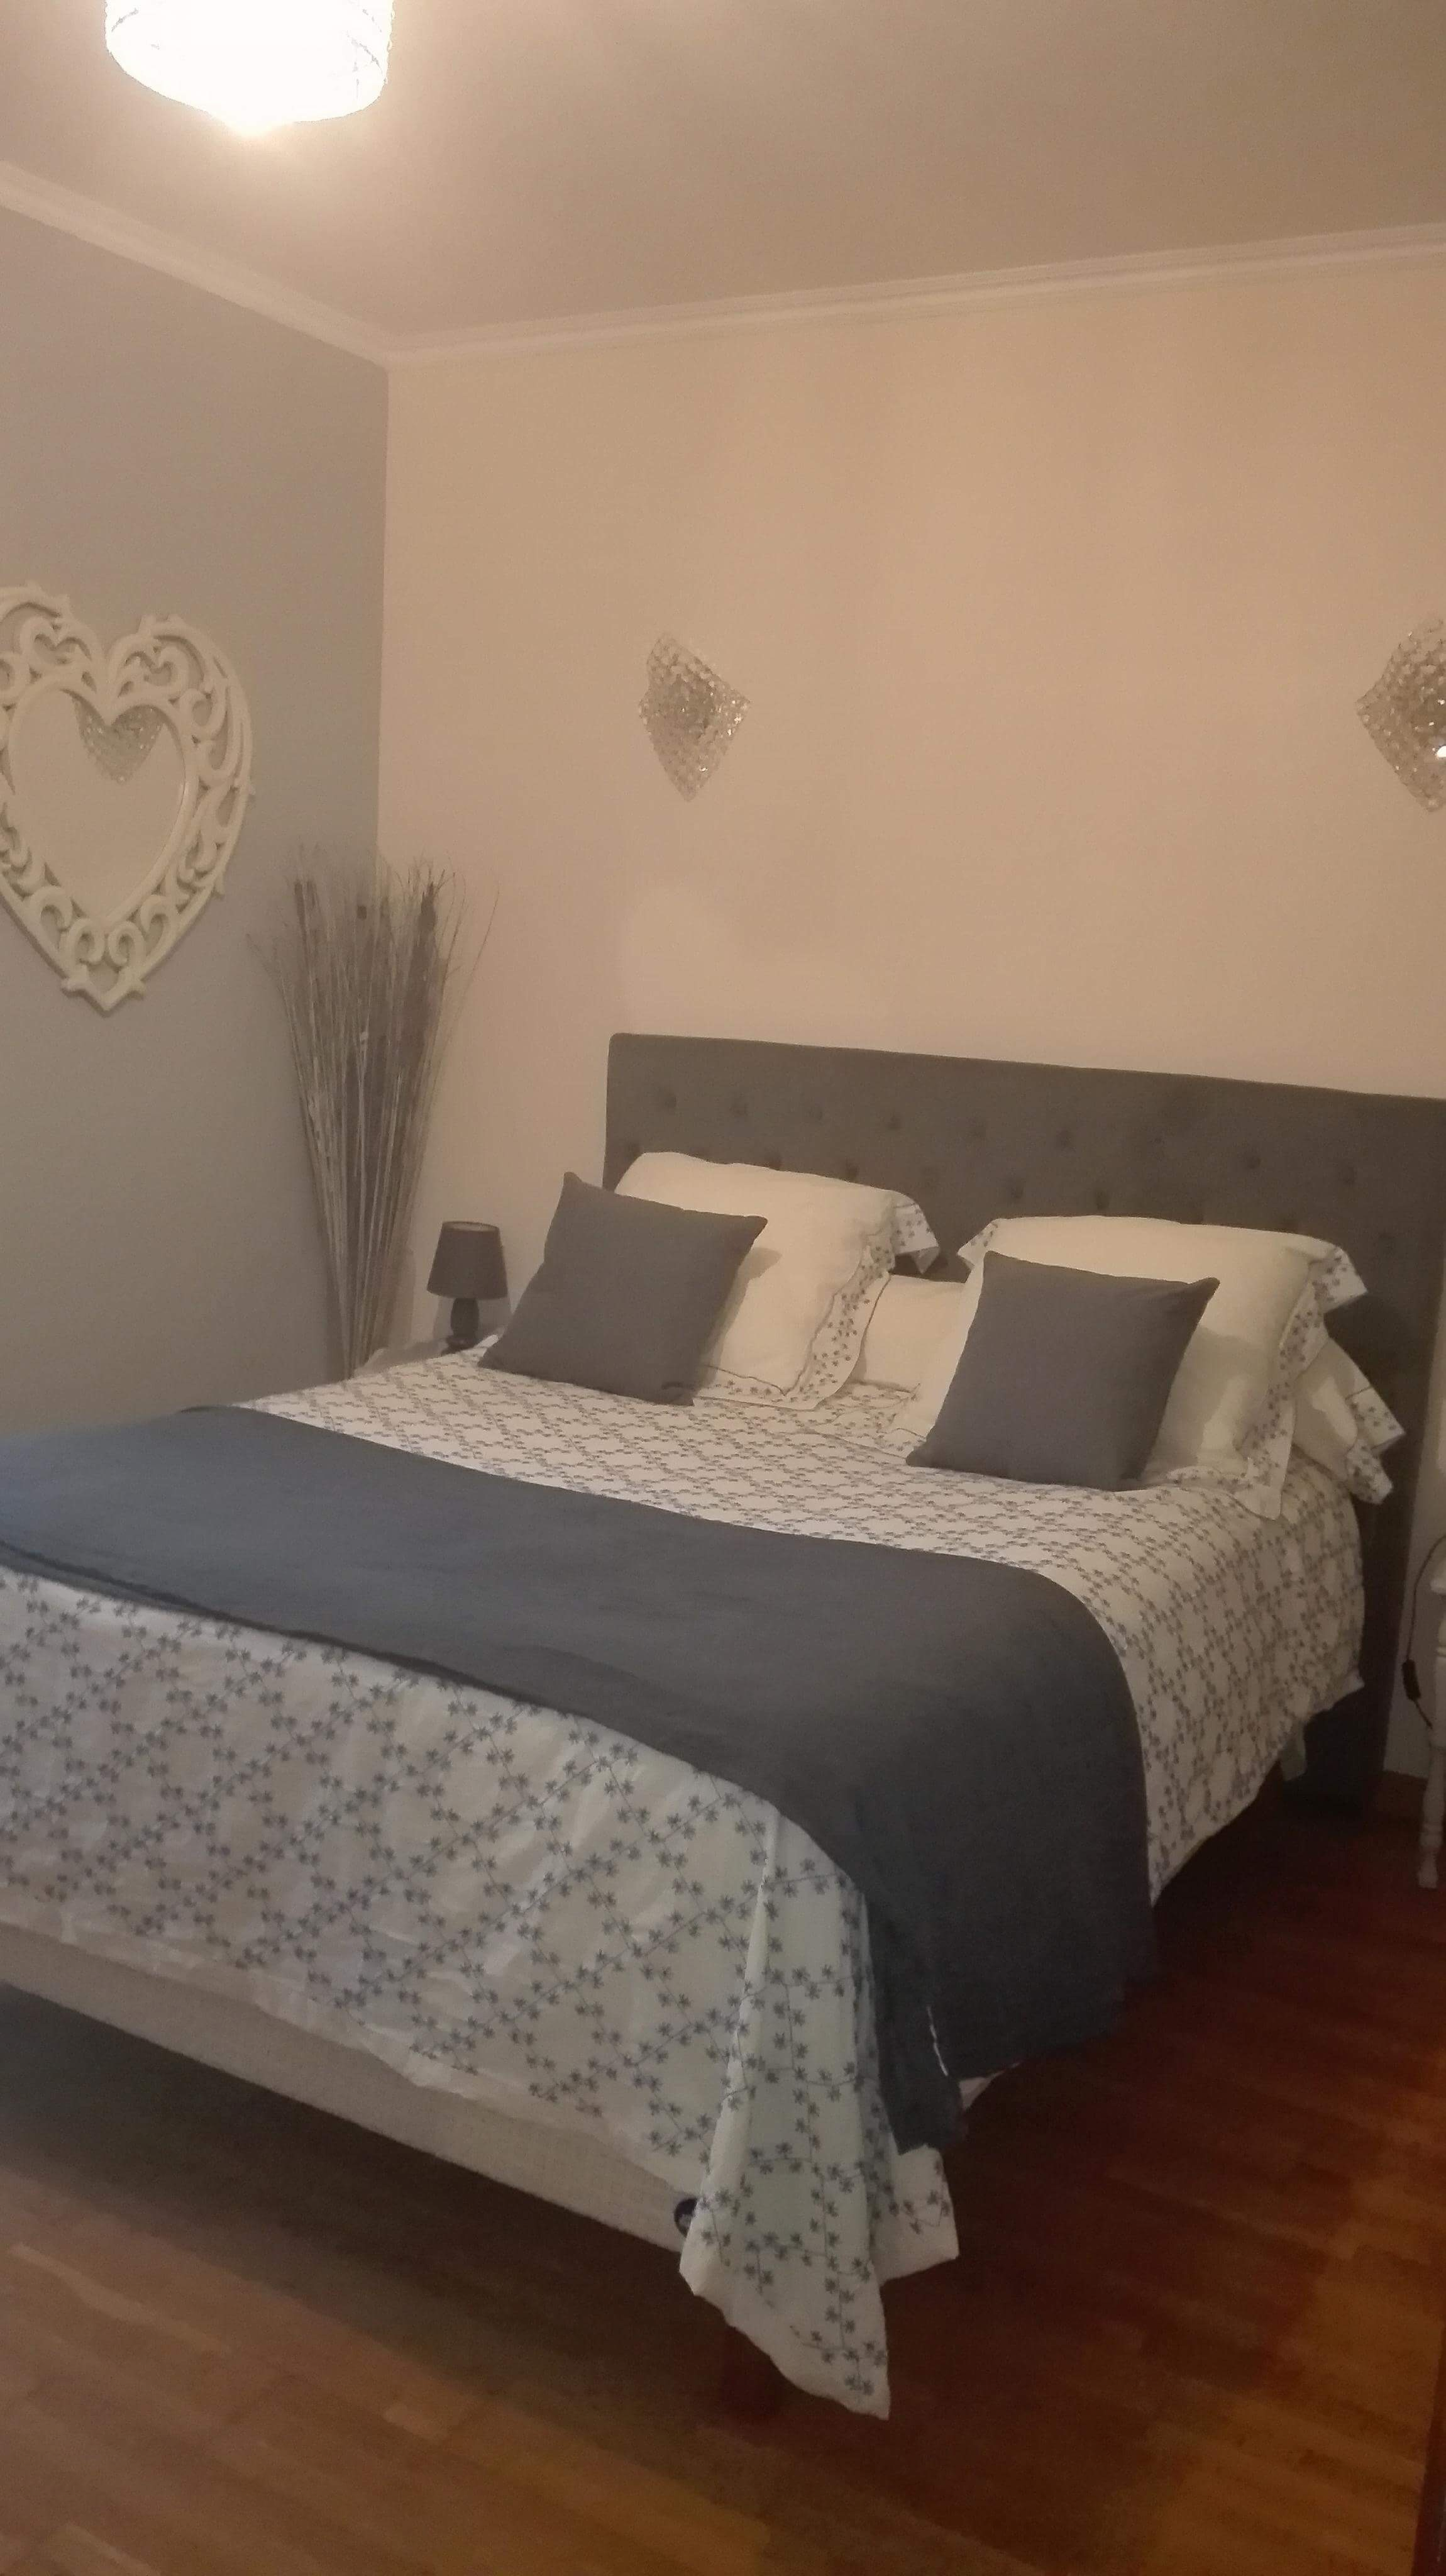 location chambre meublee Chartres